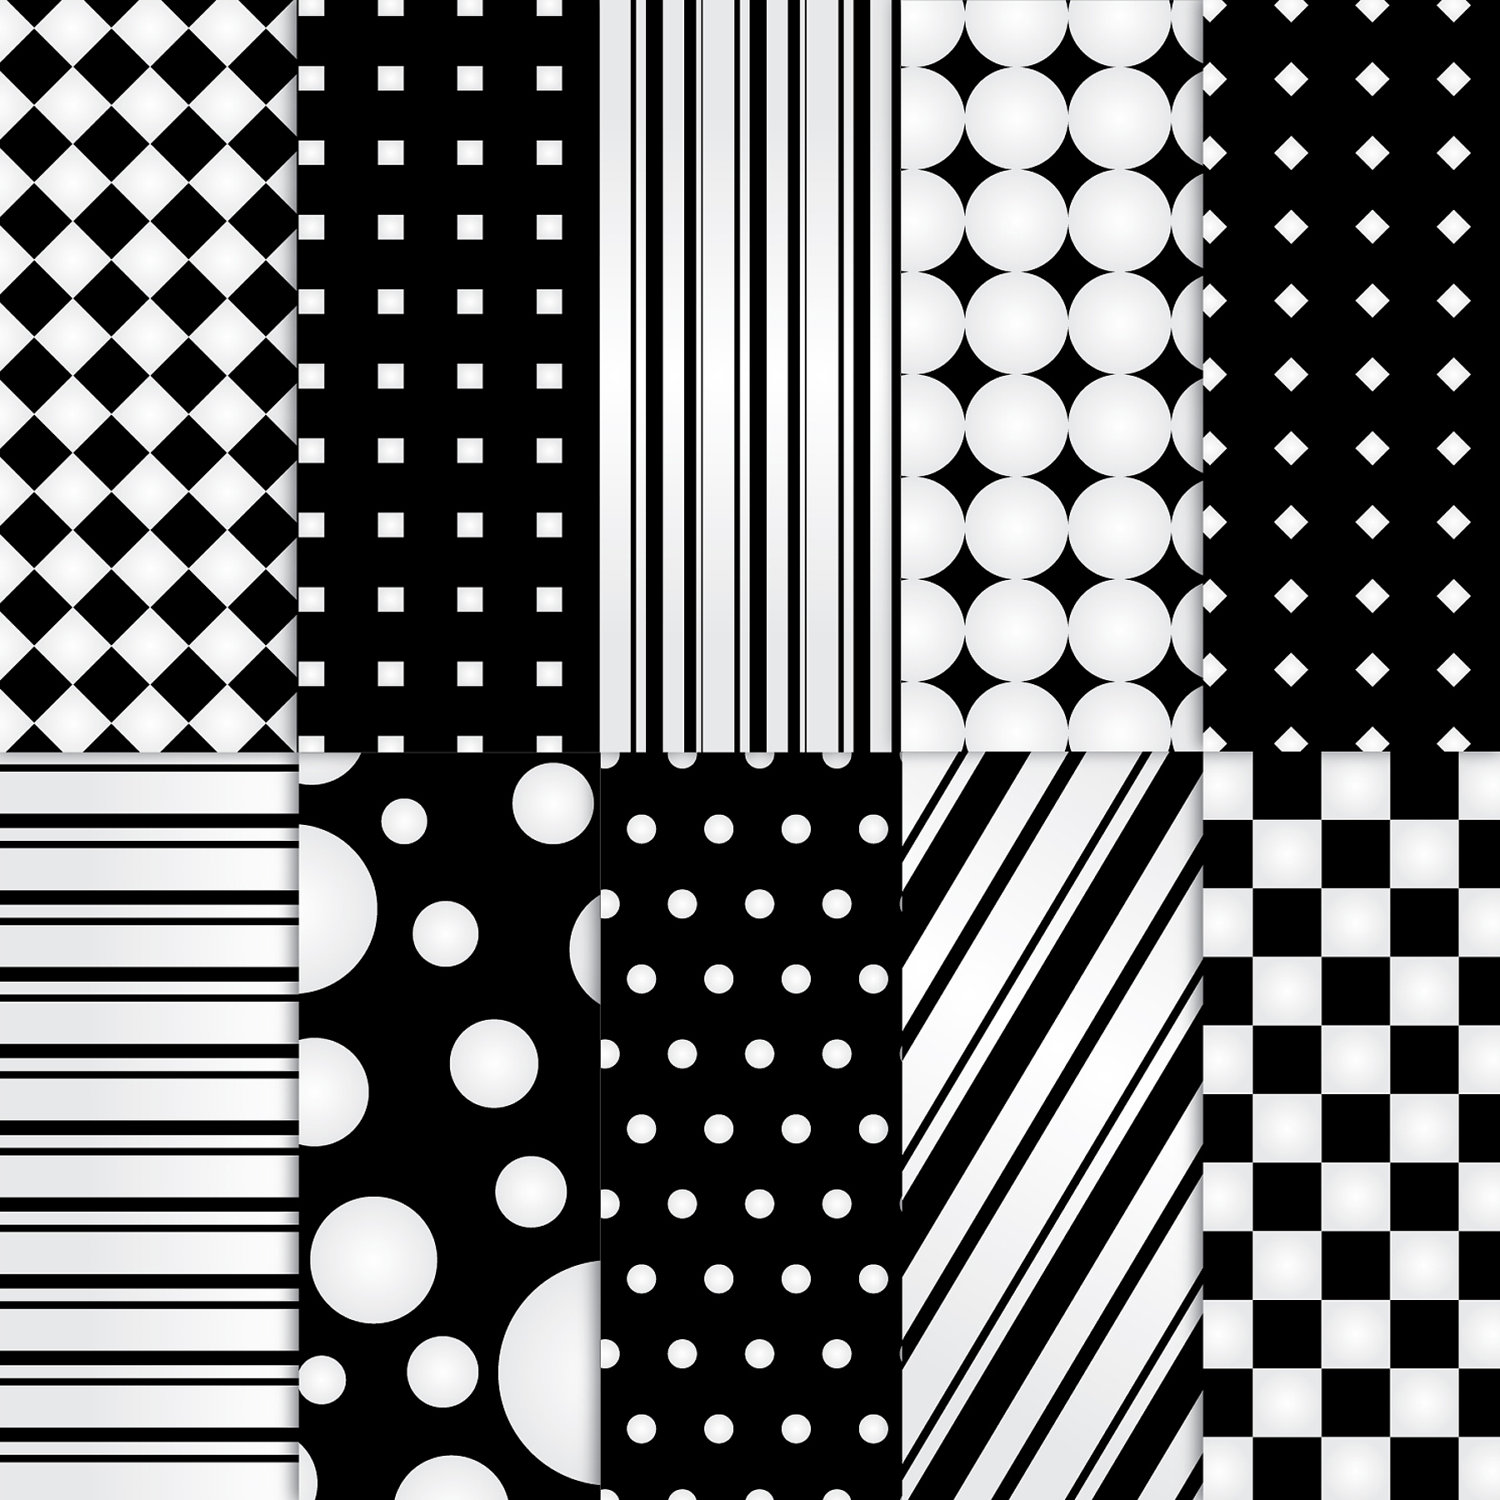 6 Images of Printable Black And White Patterns